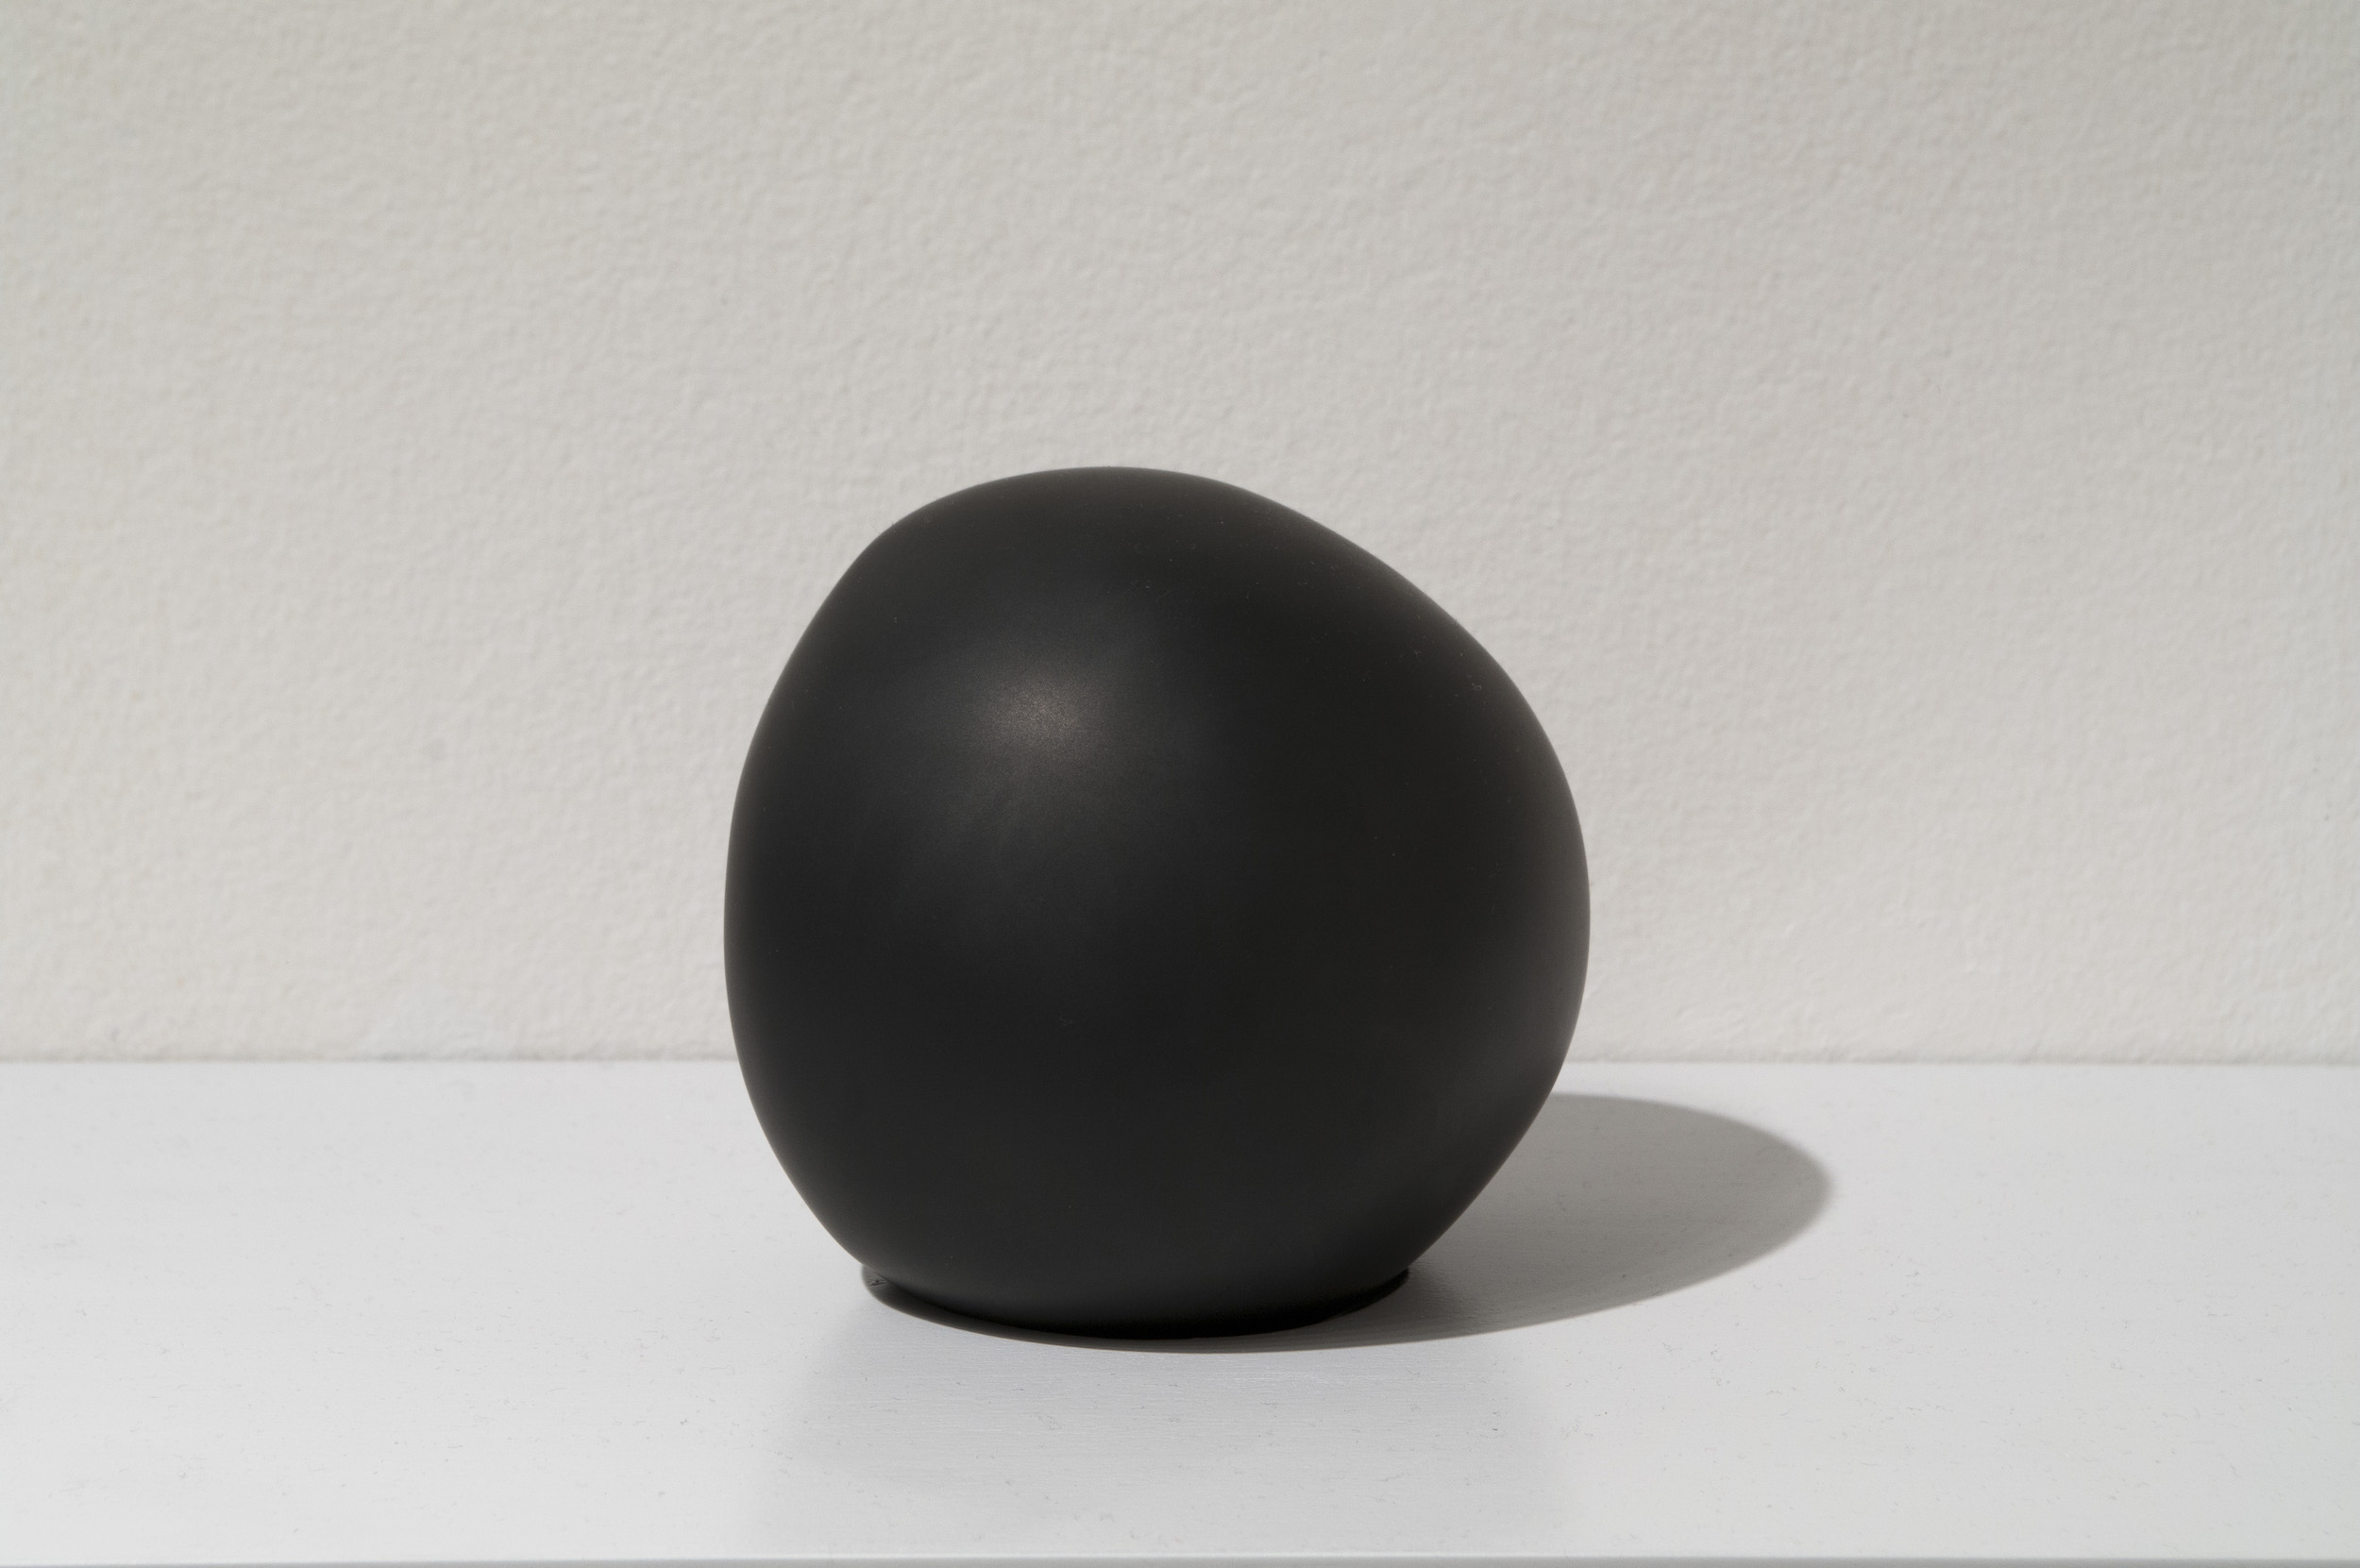 """Daily Practice, Sphere no. 1, 2012  5"""" x 4"""" x 4.25"""", Solid Graphite"""